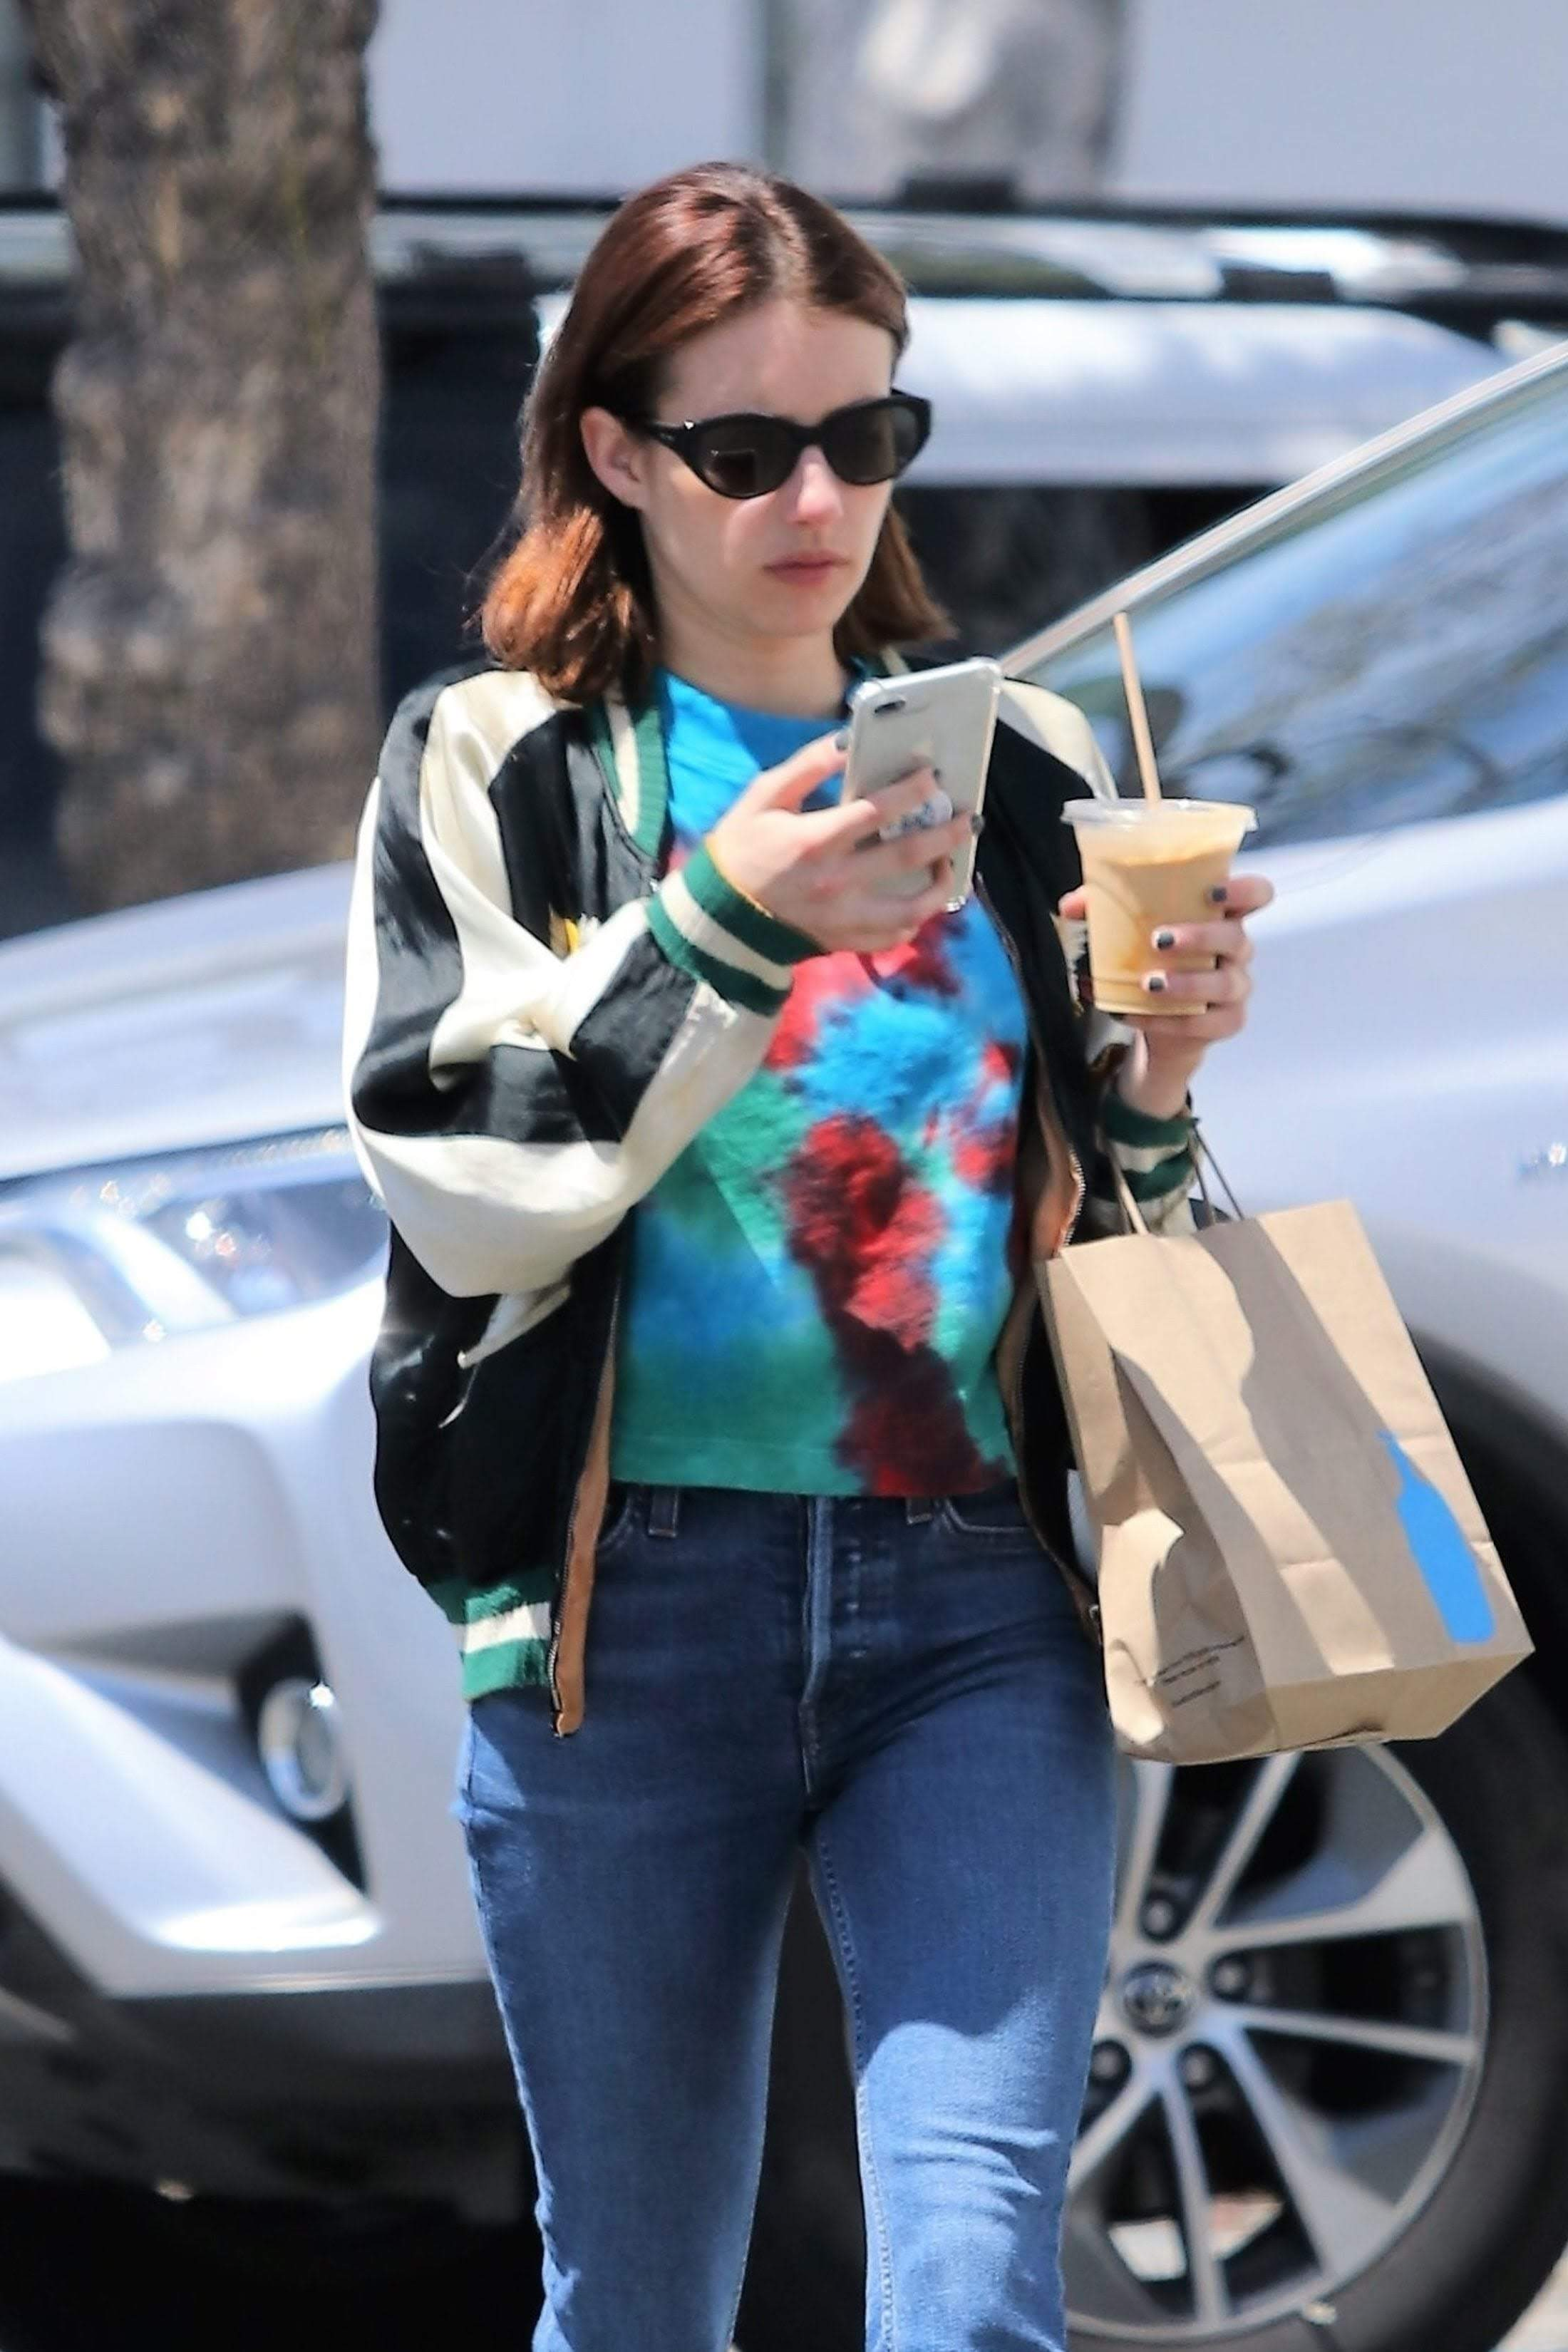 Emma Roberts steps out in Los Angeles : 謎のスリラー映画の「ザ・ハント」が今秋全米公開のエマ・ロバーツ ! !